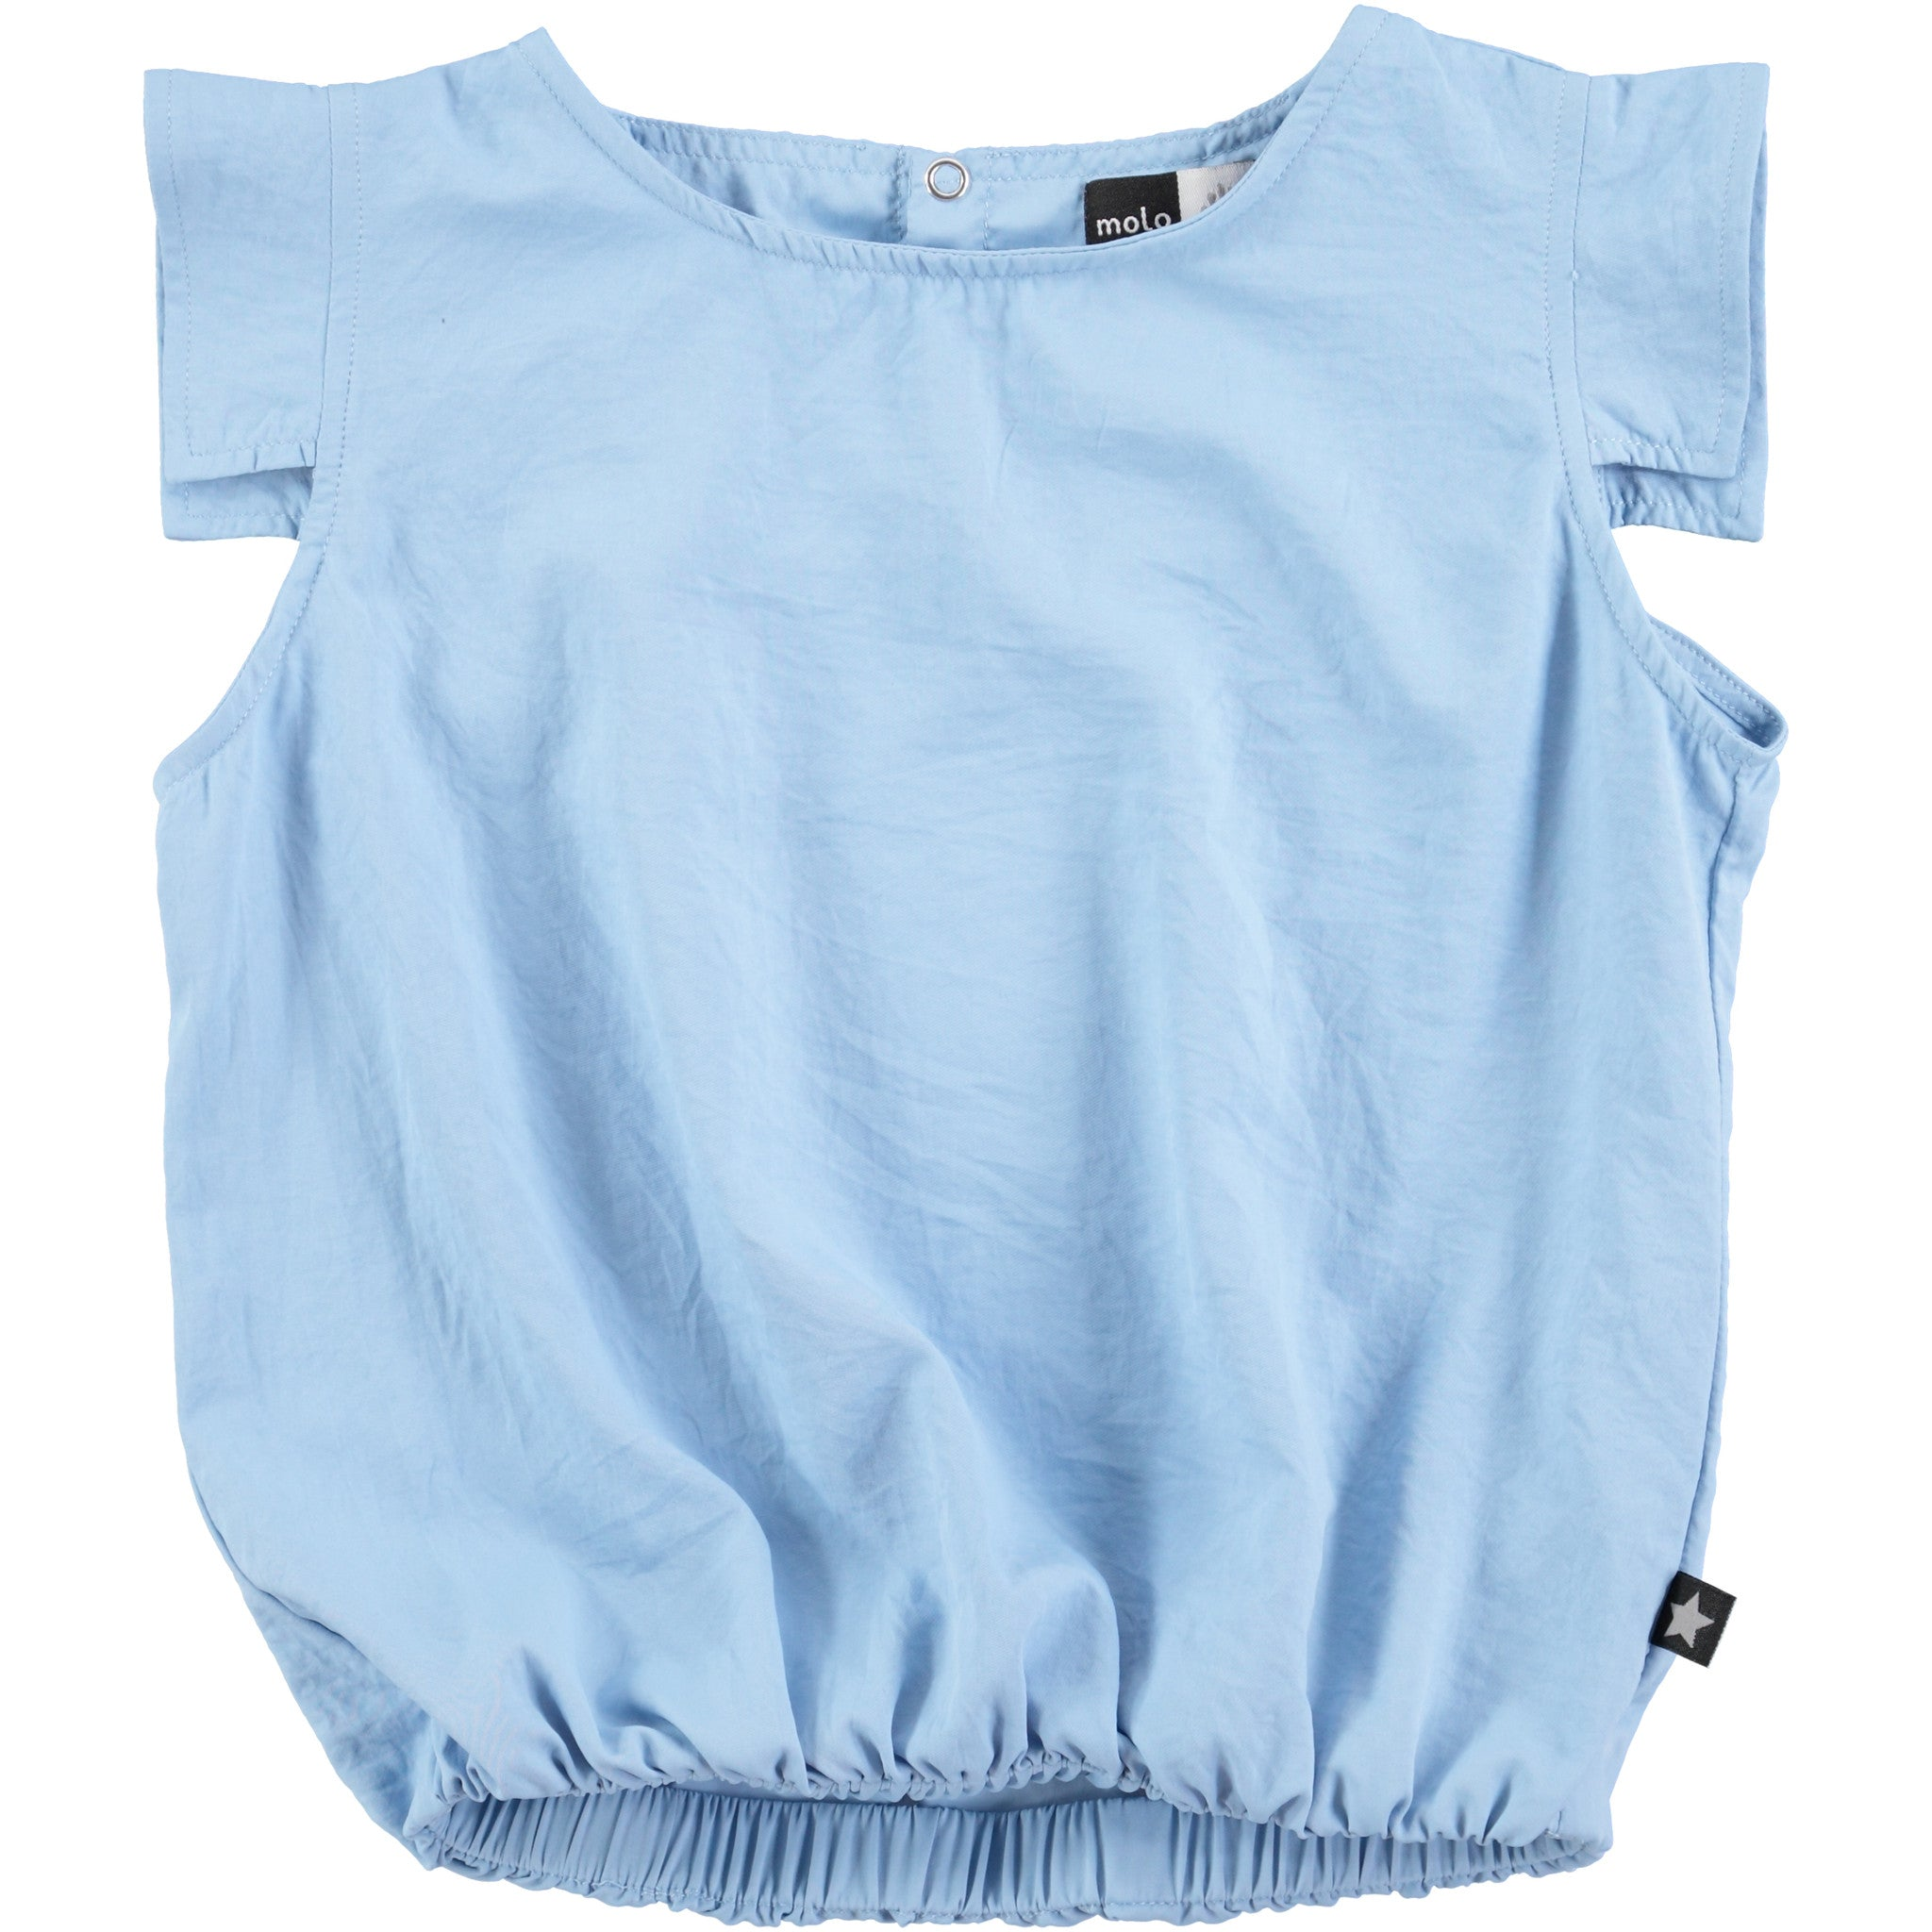 Molo Hazy Blue Blouse